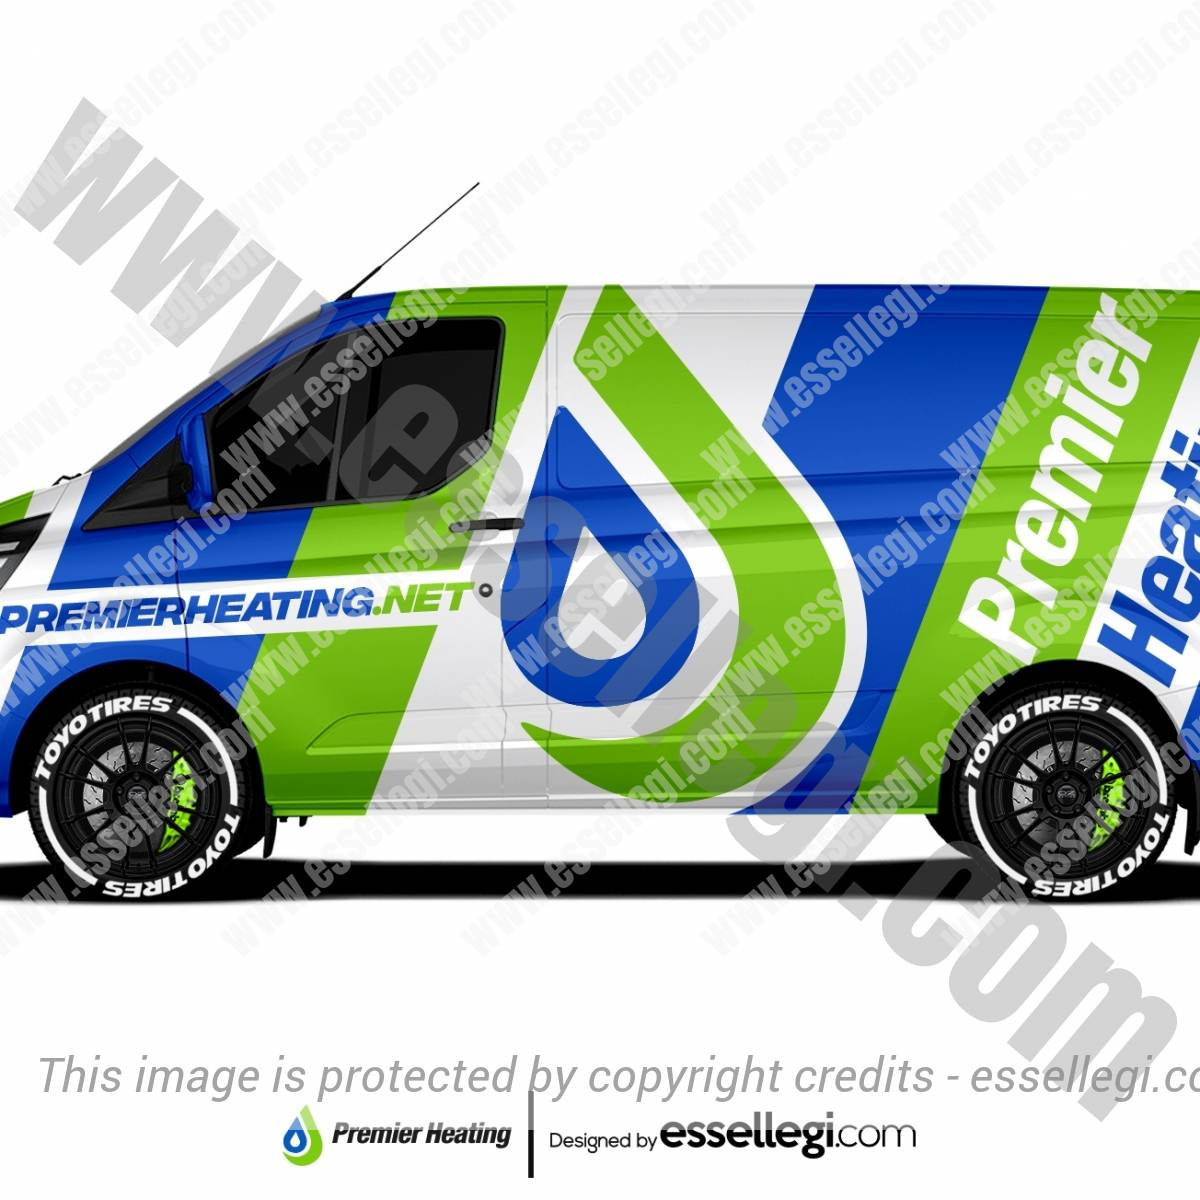 PREMIER HEATING | VAN WRAP DESIGN 🇬🇧